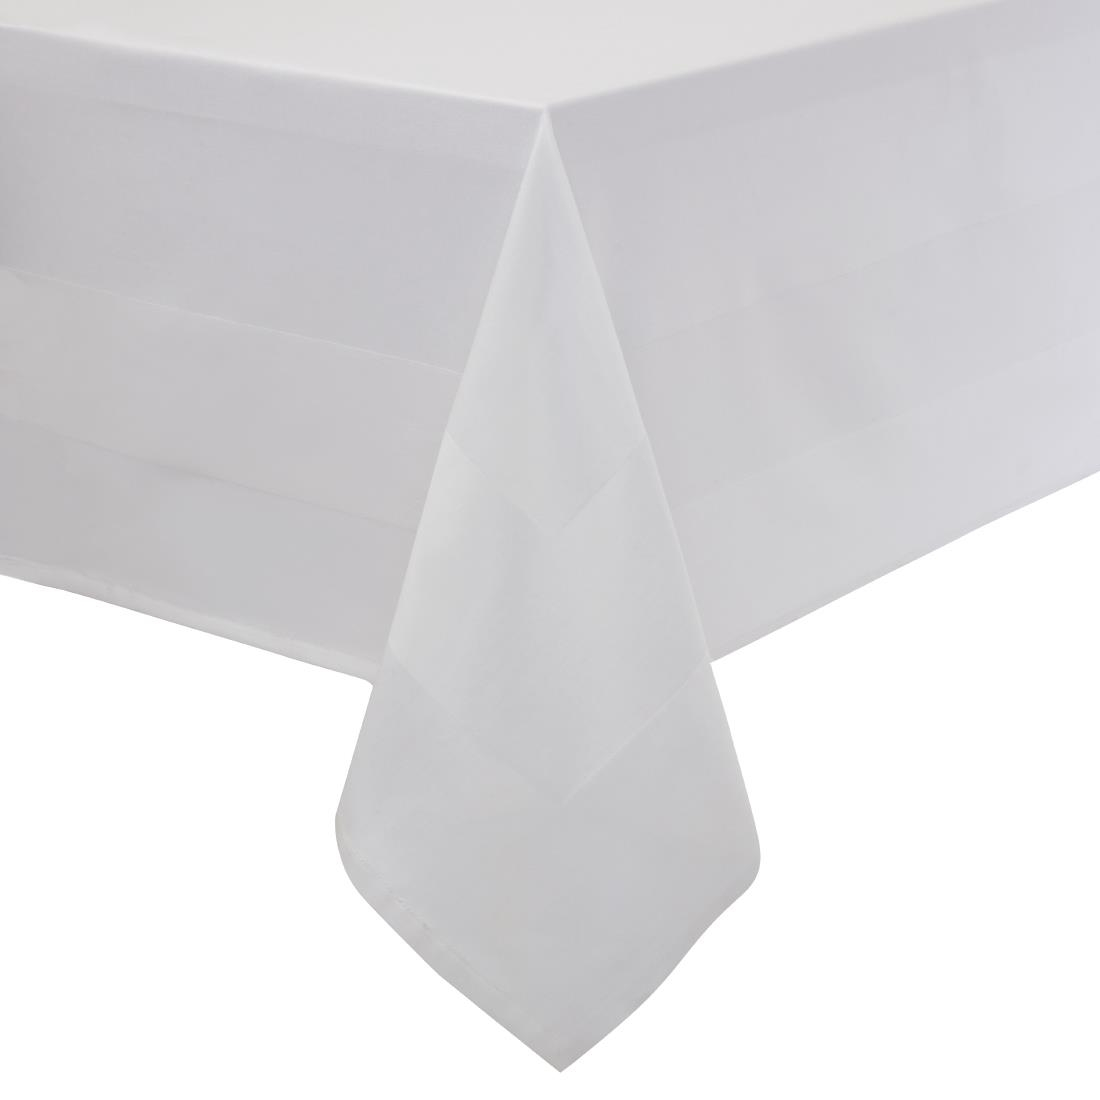 Image of Mitre Luxury Satin Band Tablecloth 1140 x 1140mm